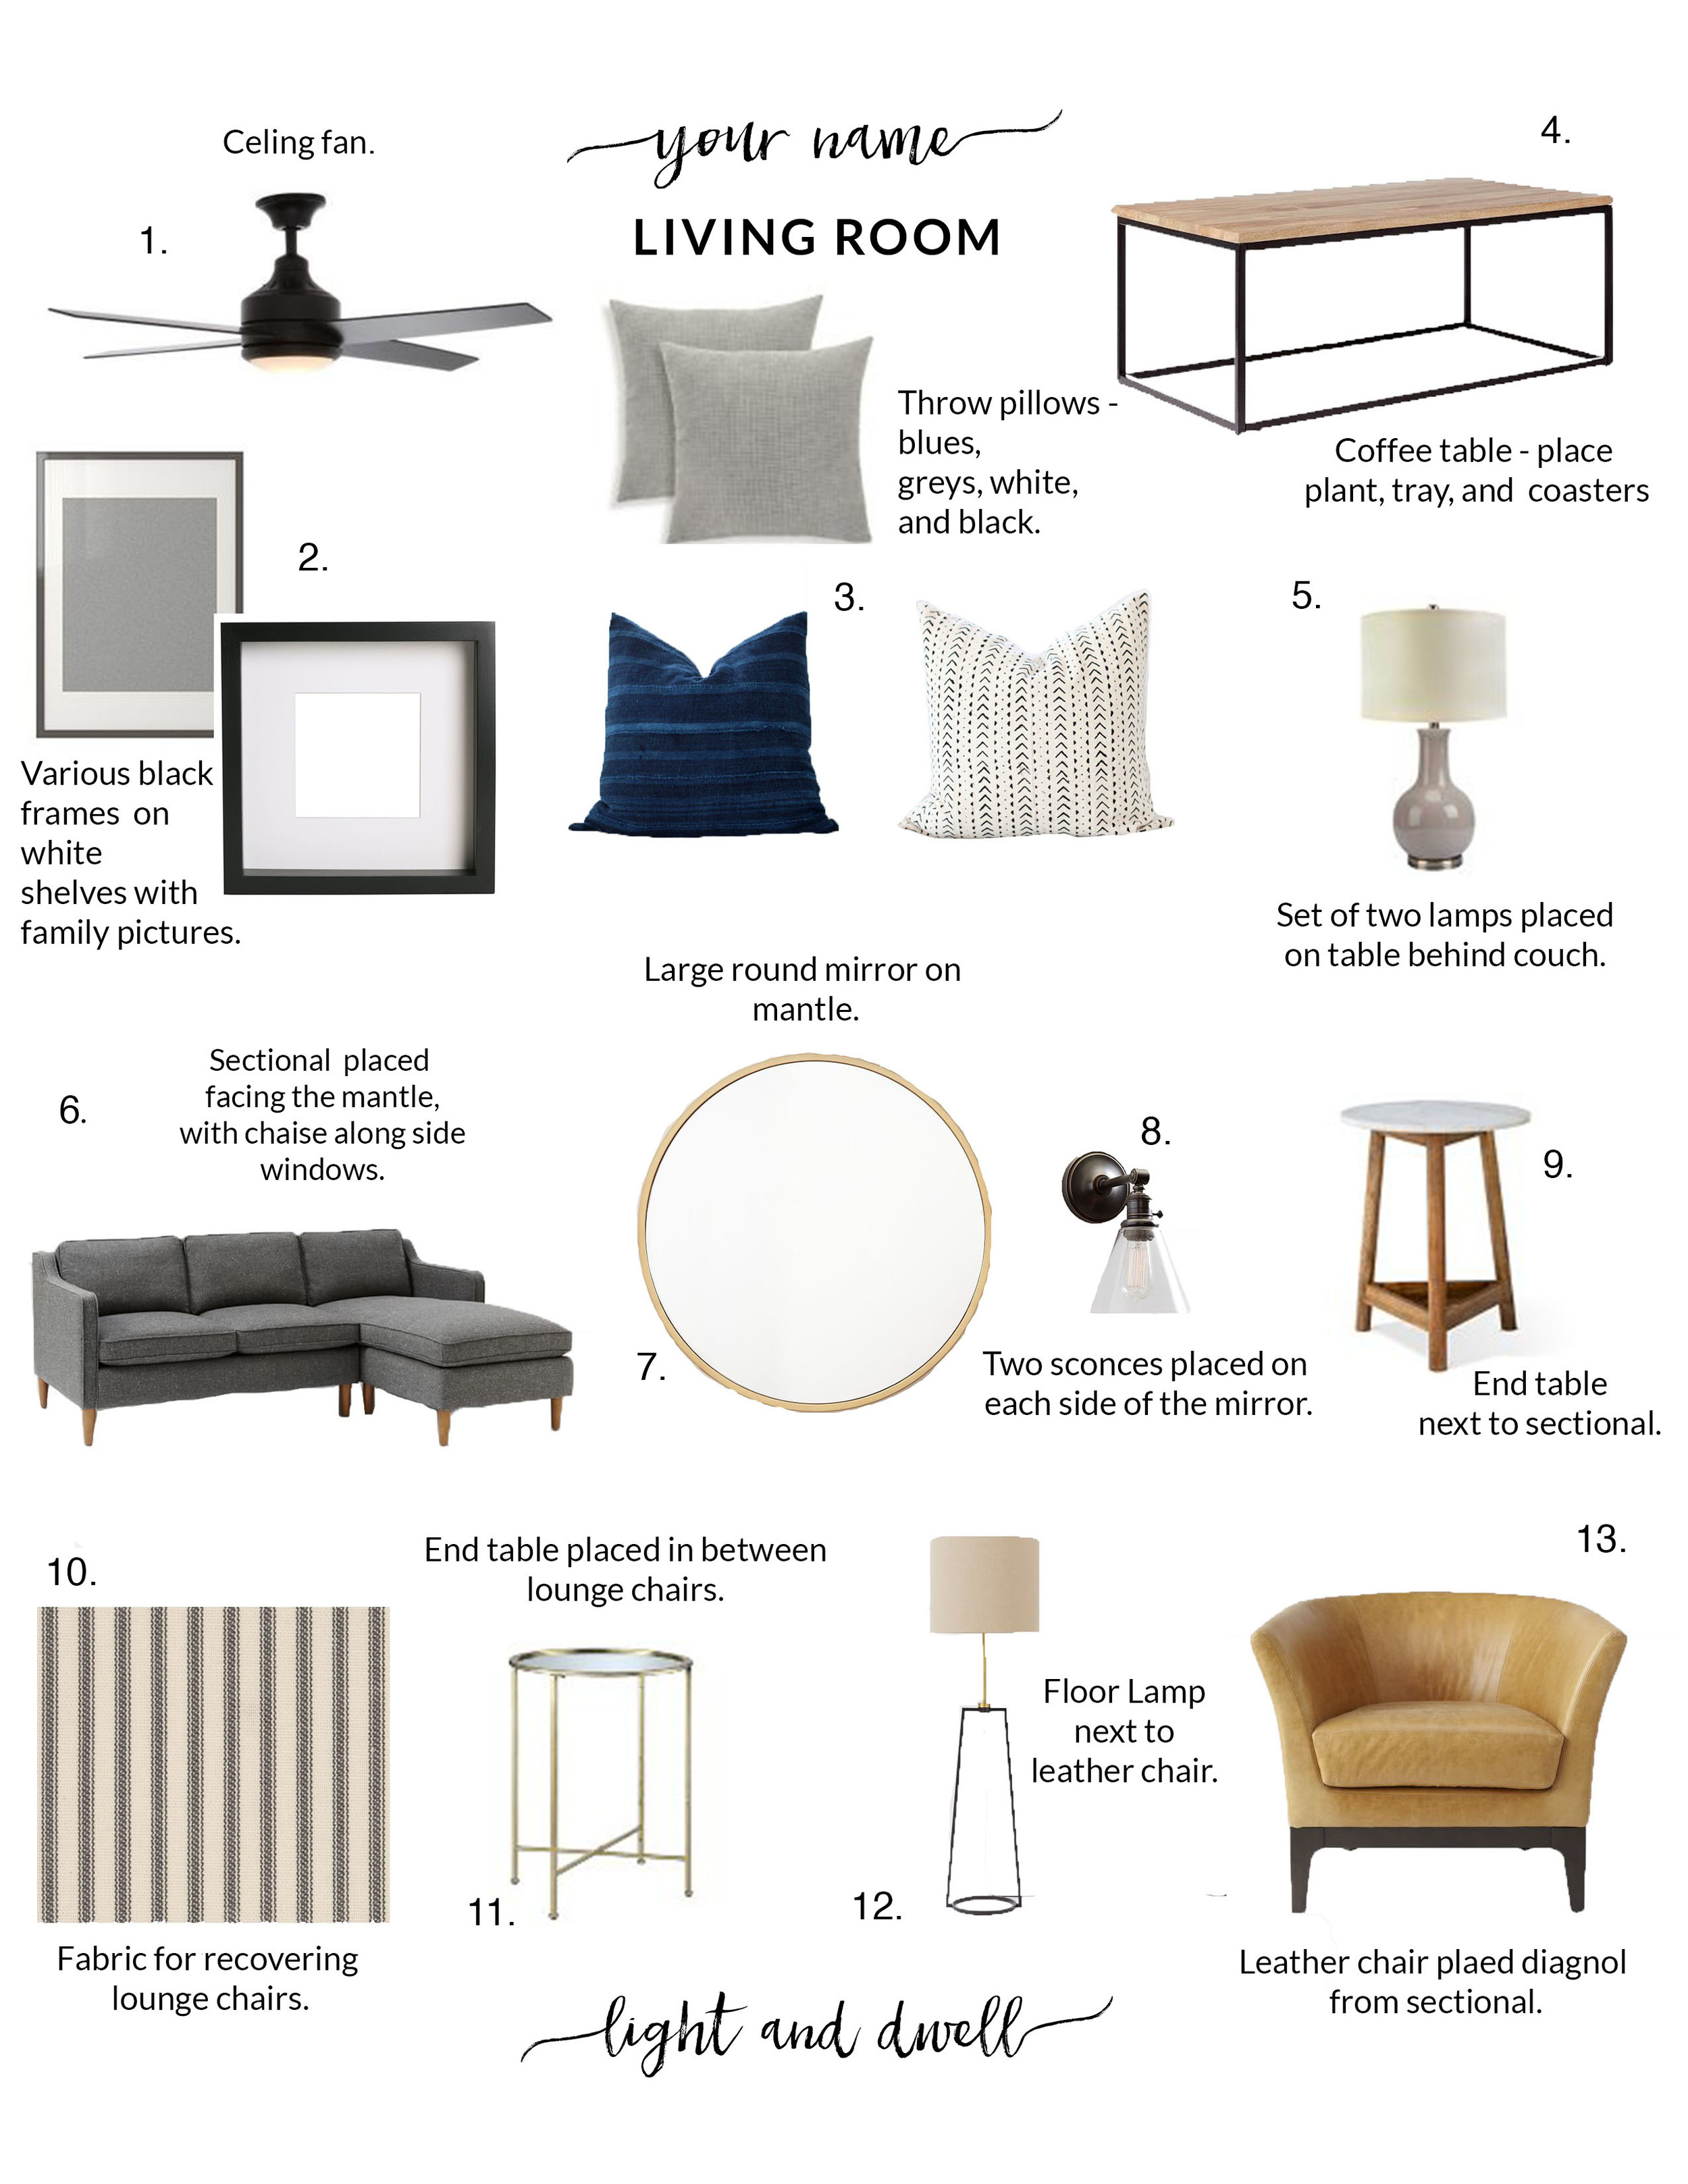 This style board was created by Light and Dwell, llc.